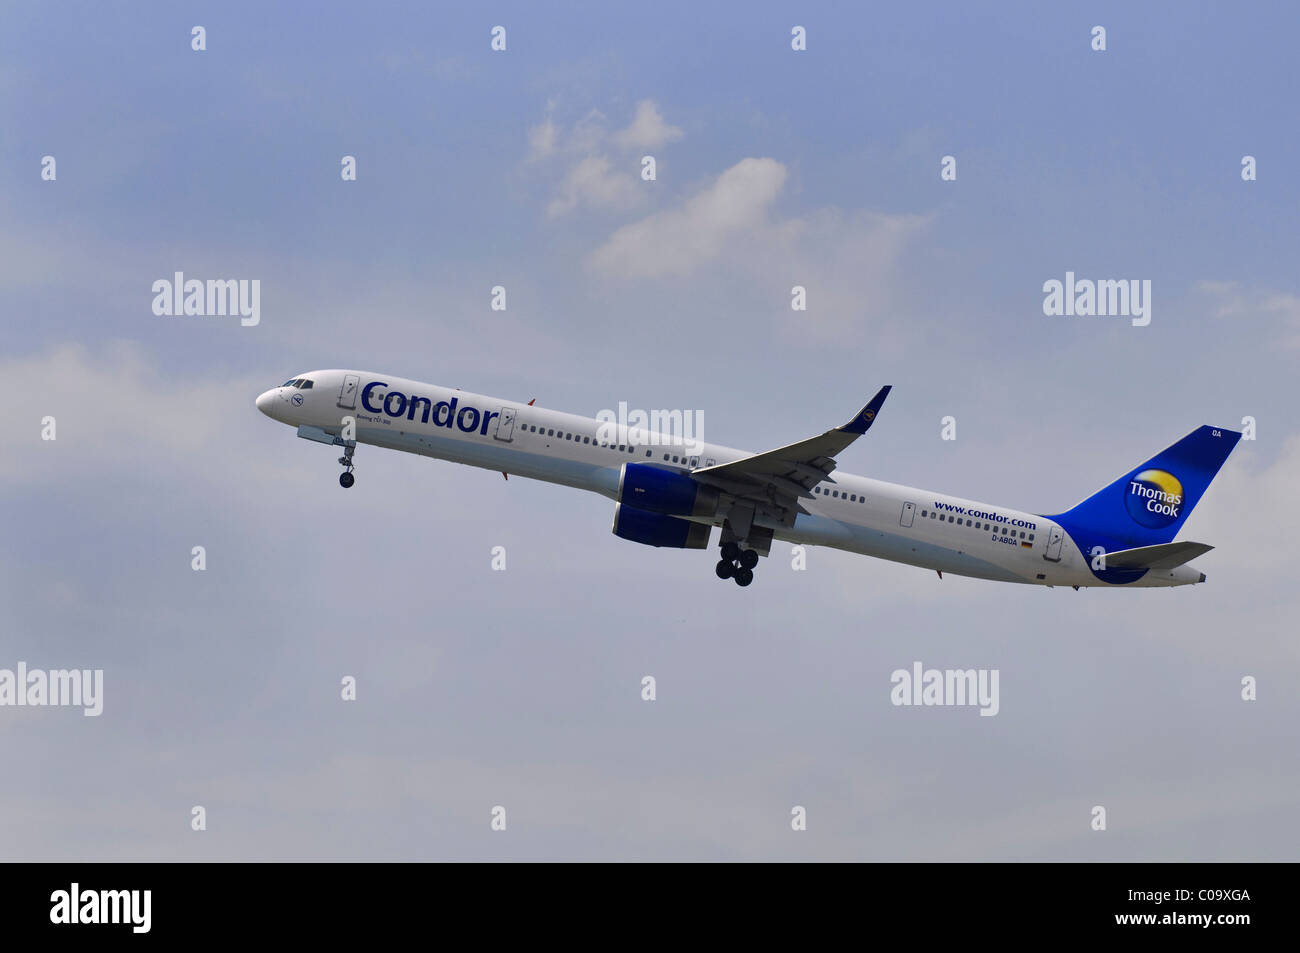 Condor passenger aircraft, climb, Boeing 757-300 Stock Photo